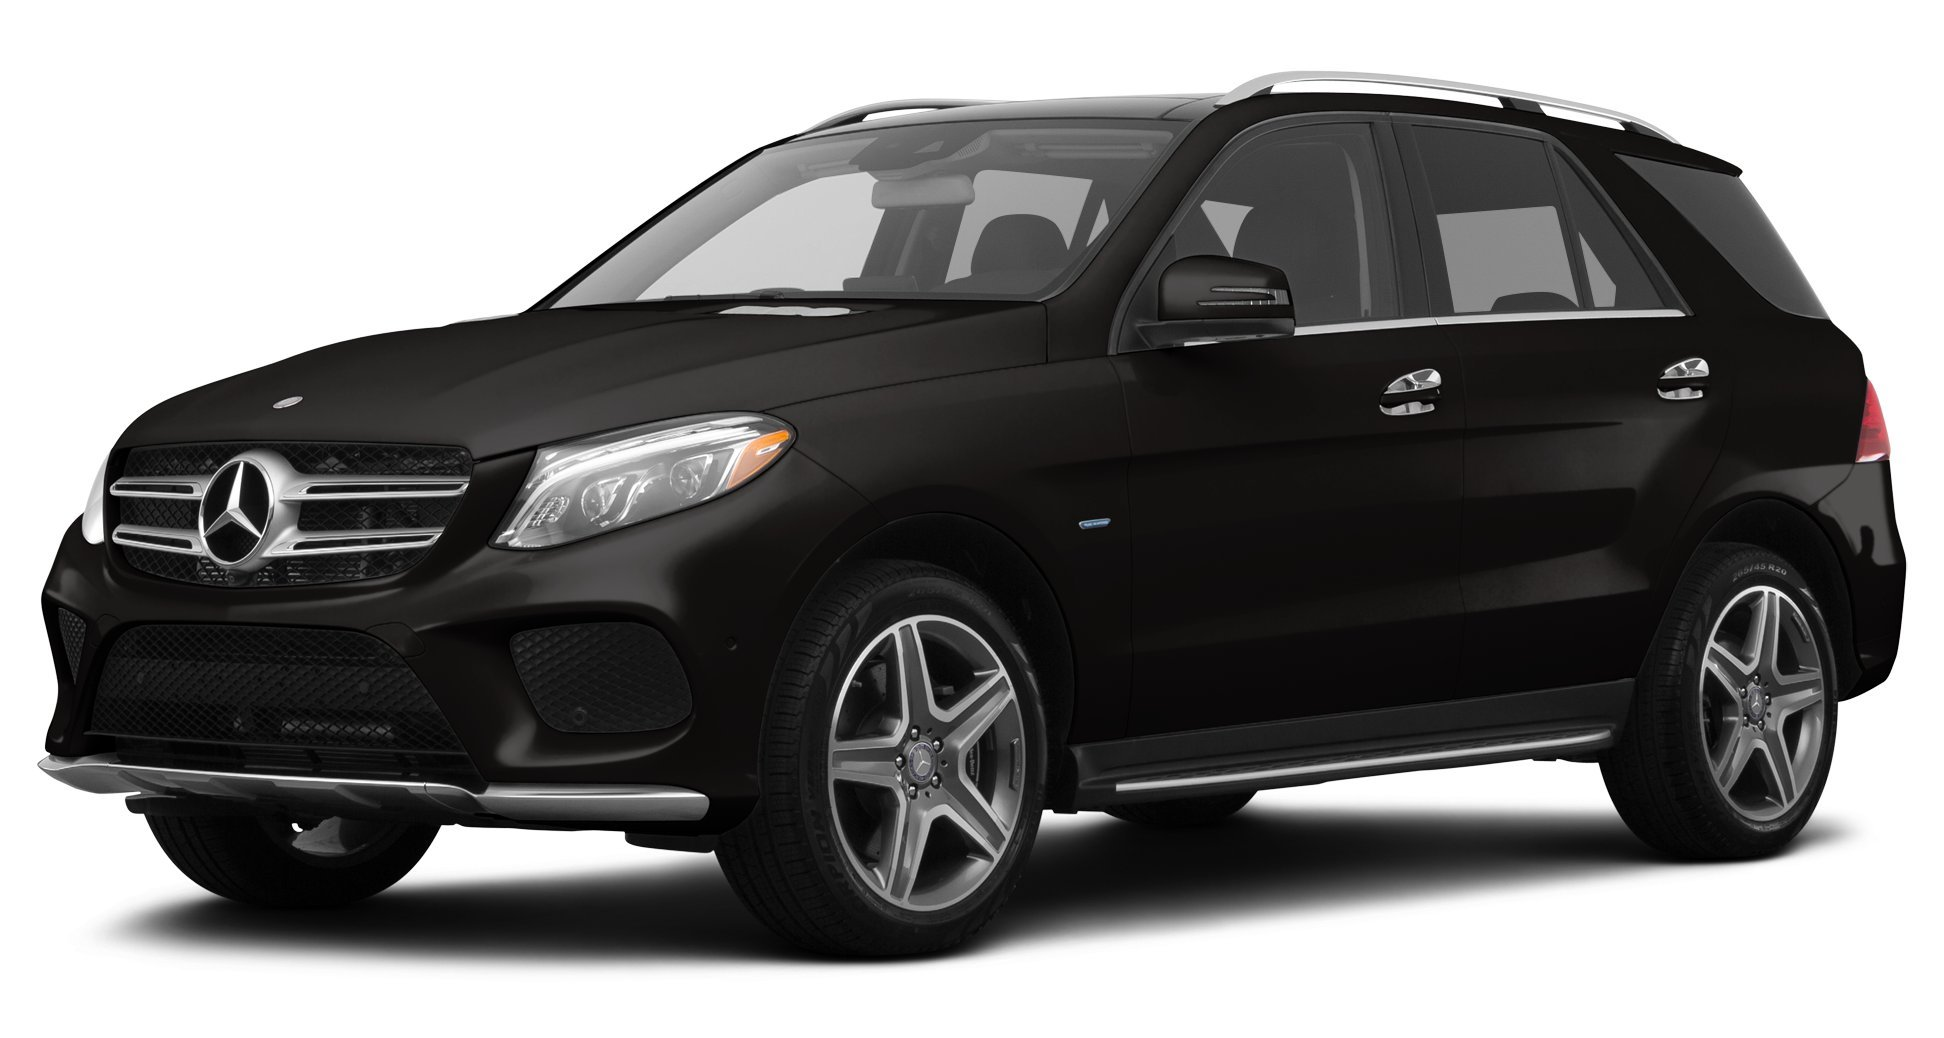 Amazon 2016 Mercedes Benz GLE450 AMG Reviews and Specs